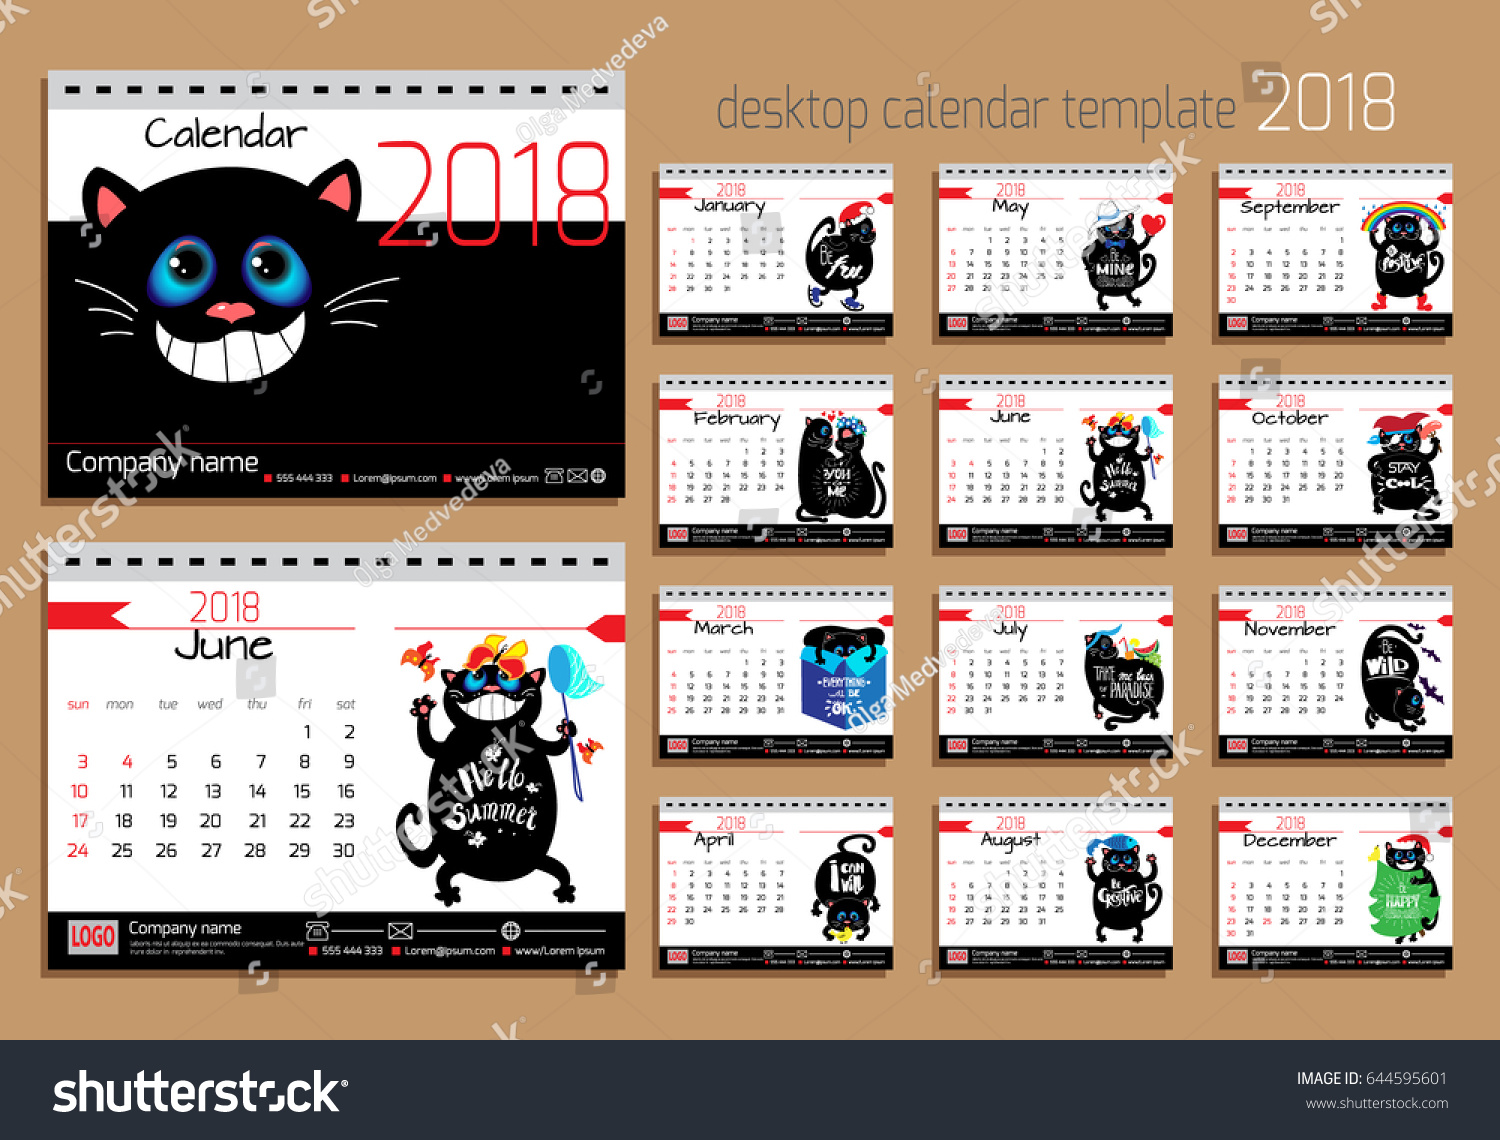 Inspirational Quotes Desk Calendar 2018 : Desk calendar funny cats year stock vector